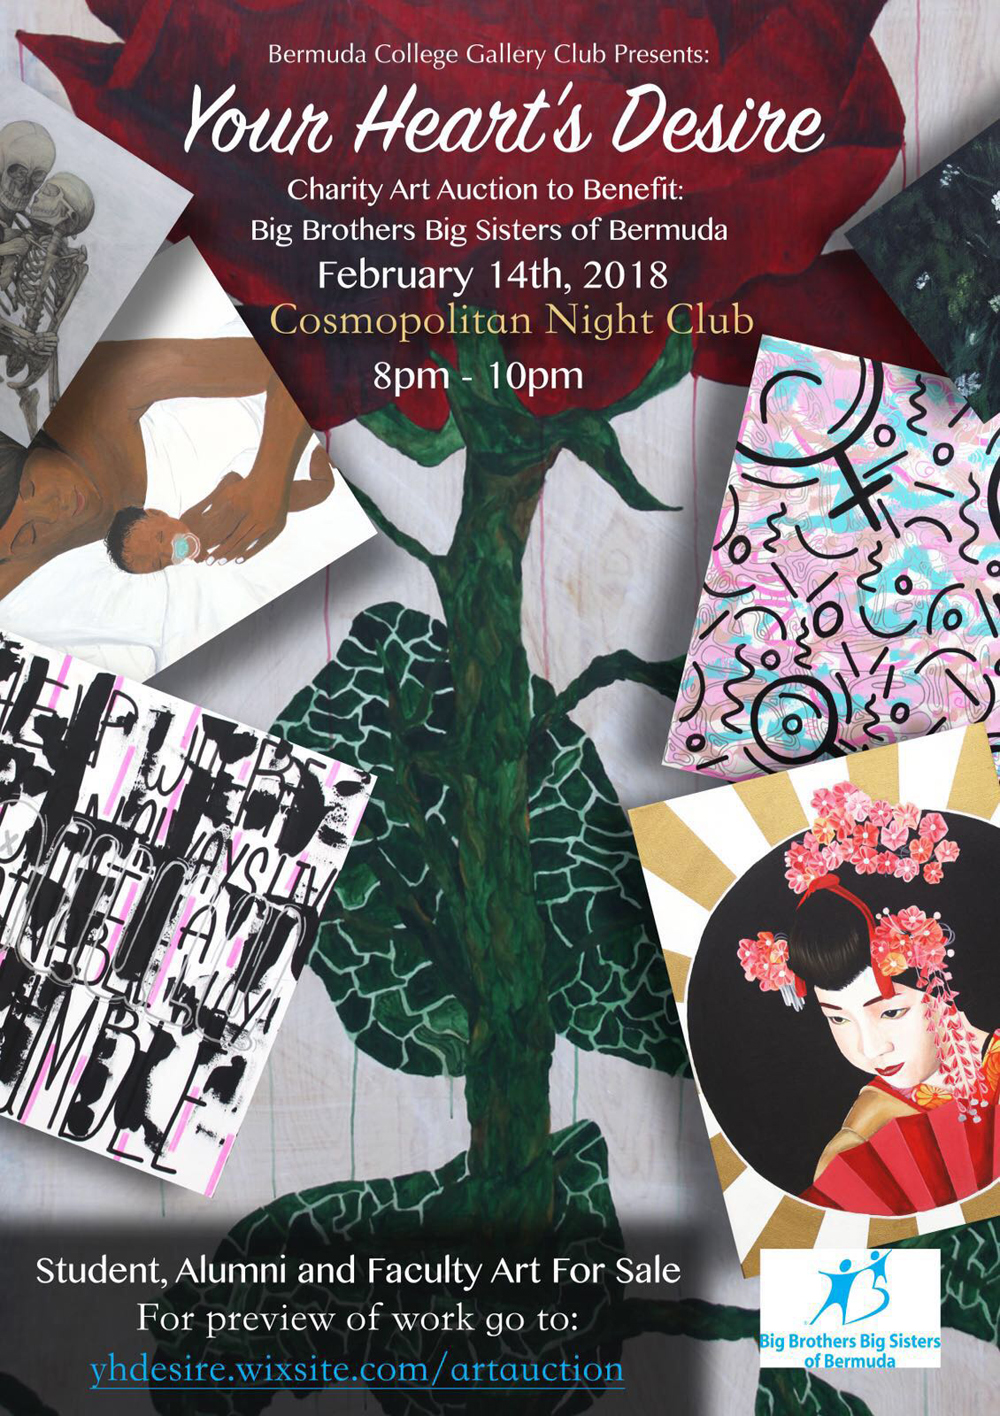 Bermuda College Gallery Club Art Auction Feb 12 2018